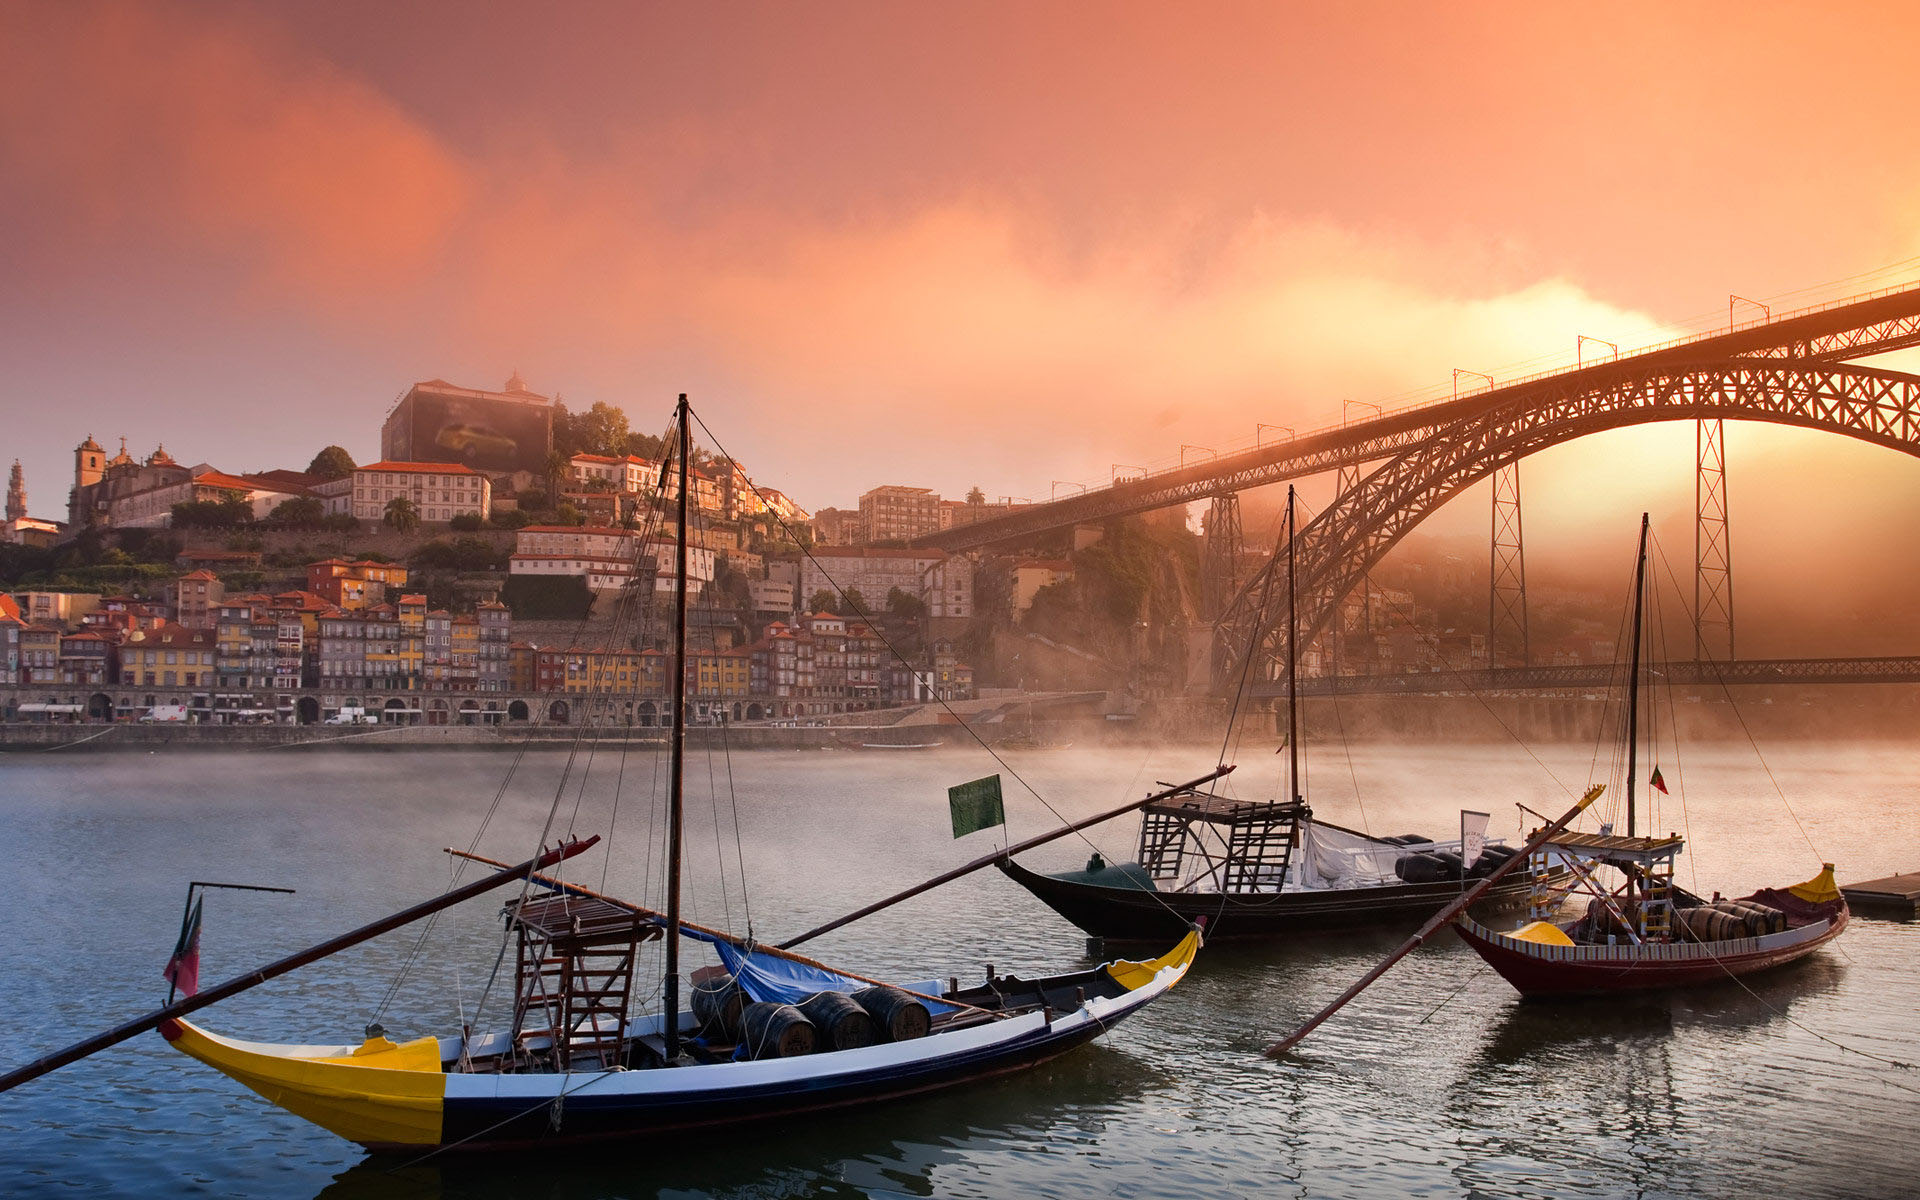 The sunny city of Porto will host the 6th World Congress on Targeting Microbiota in October 28-30, 2018.